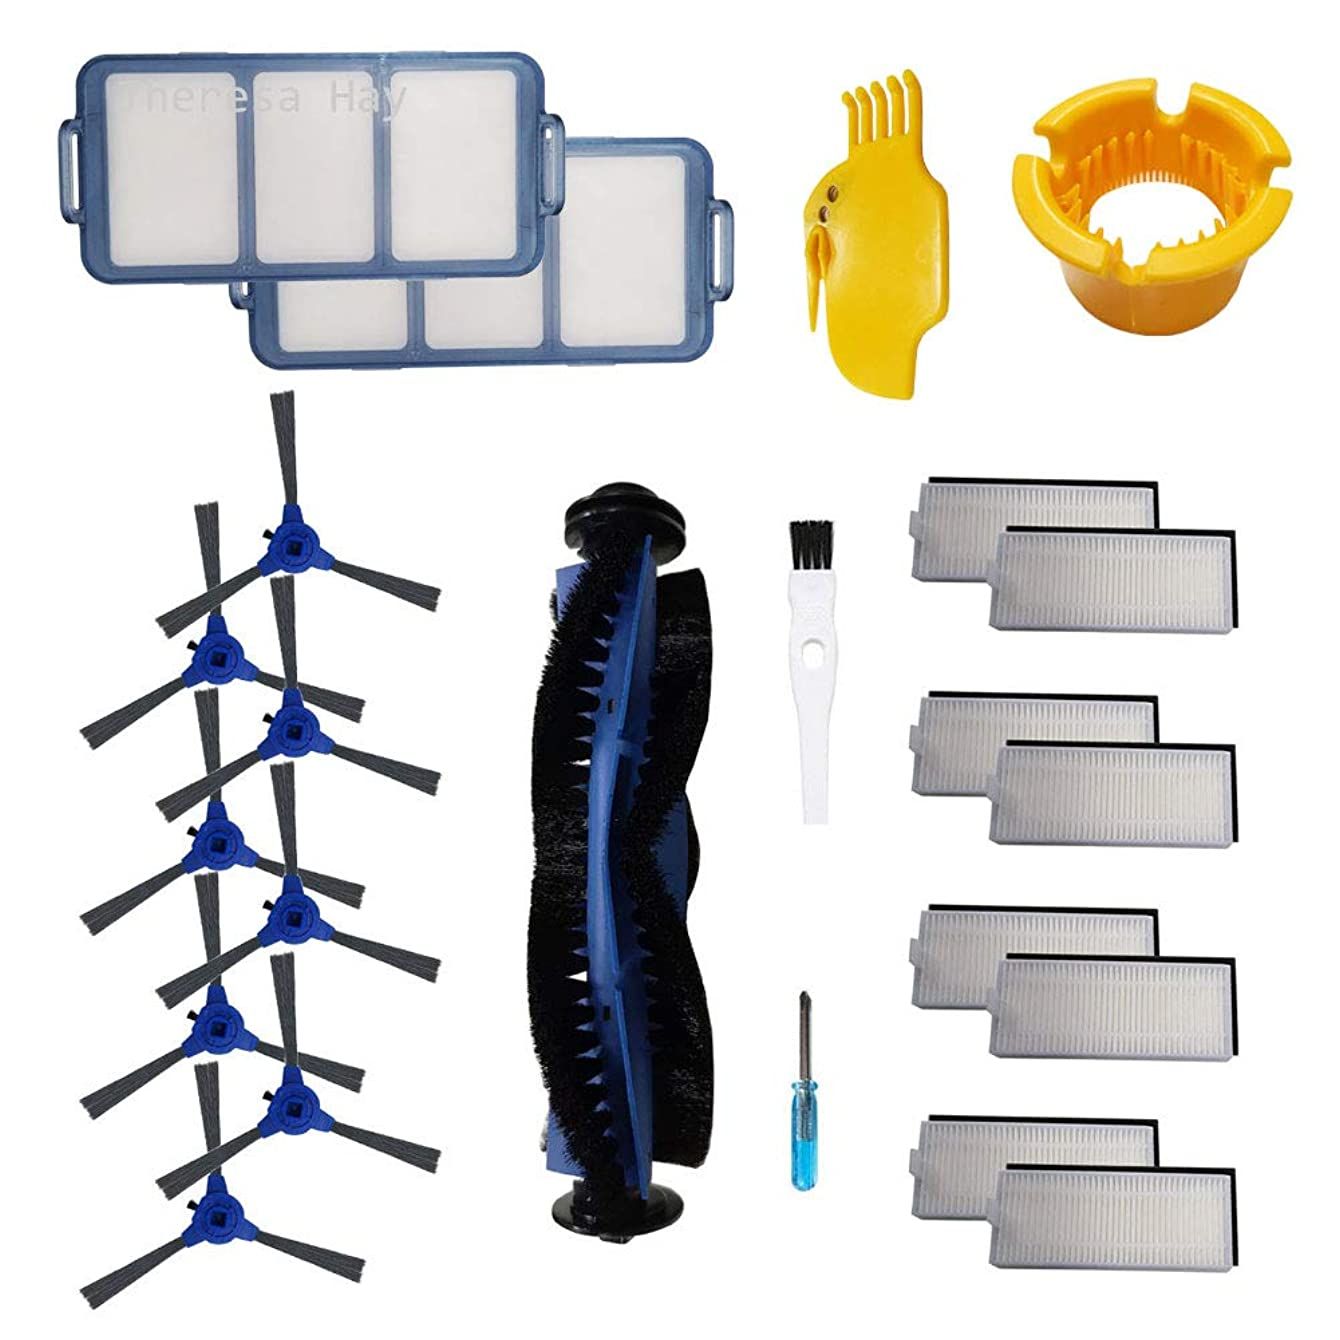 Theresa Hay Accessories Kit for eufy RoboVac 11S, RoboVac 30, RoboVac 30C, RoboVac 15C, Robotic Vacuum Cleaner Replacement Parts Filters, Side Brushes,Rolling Brush